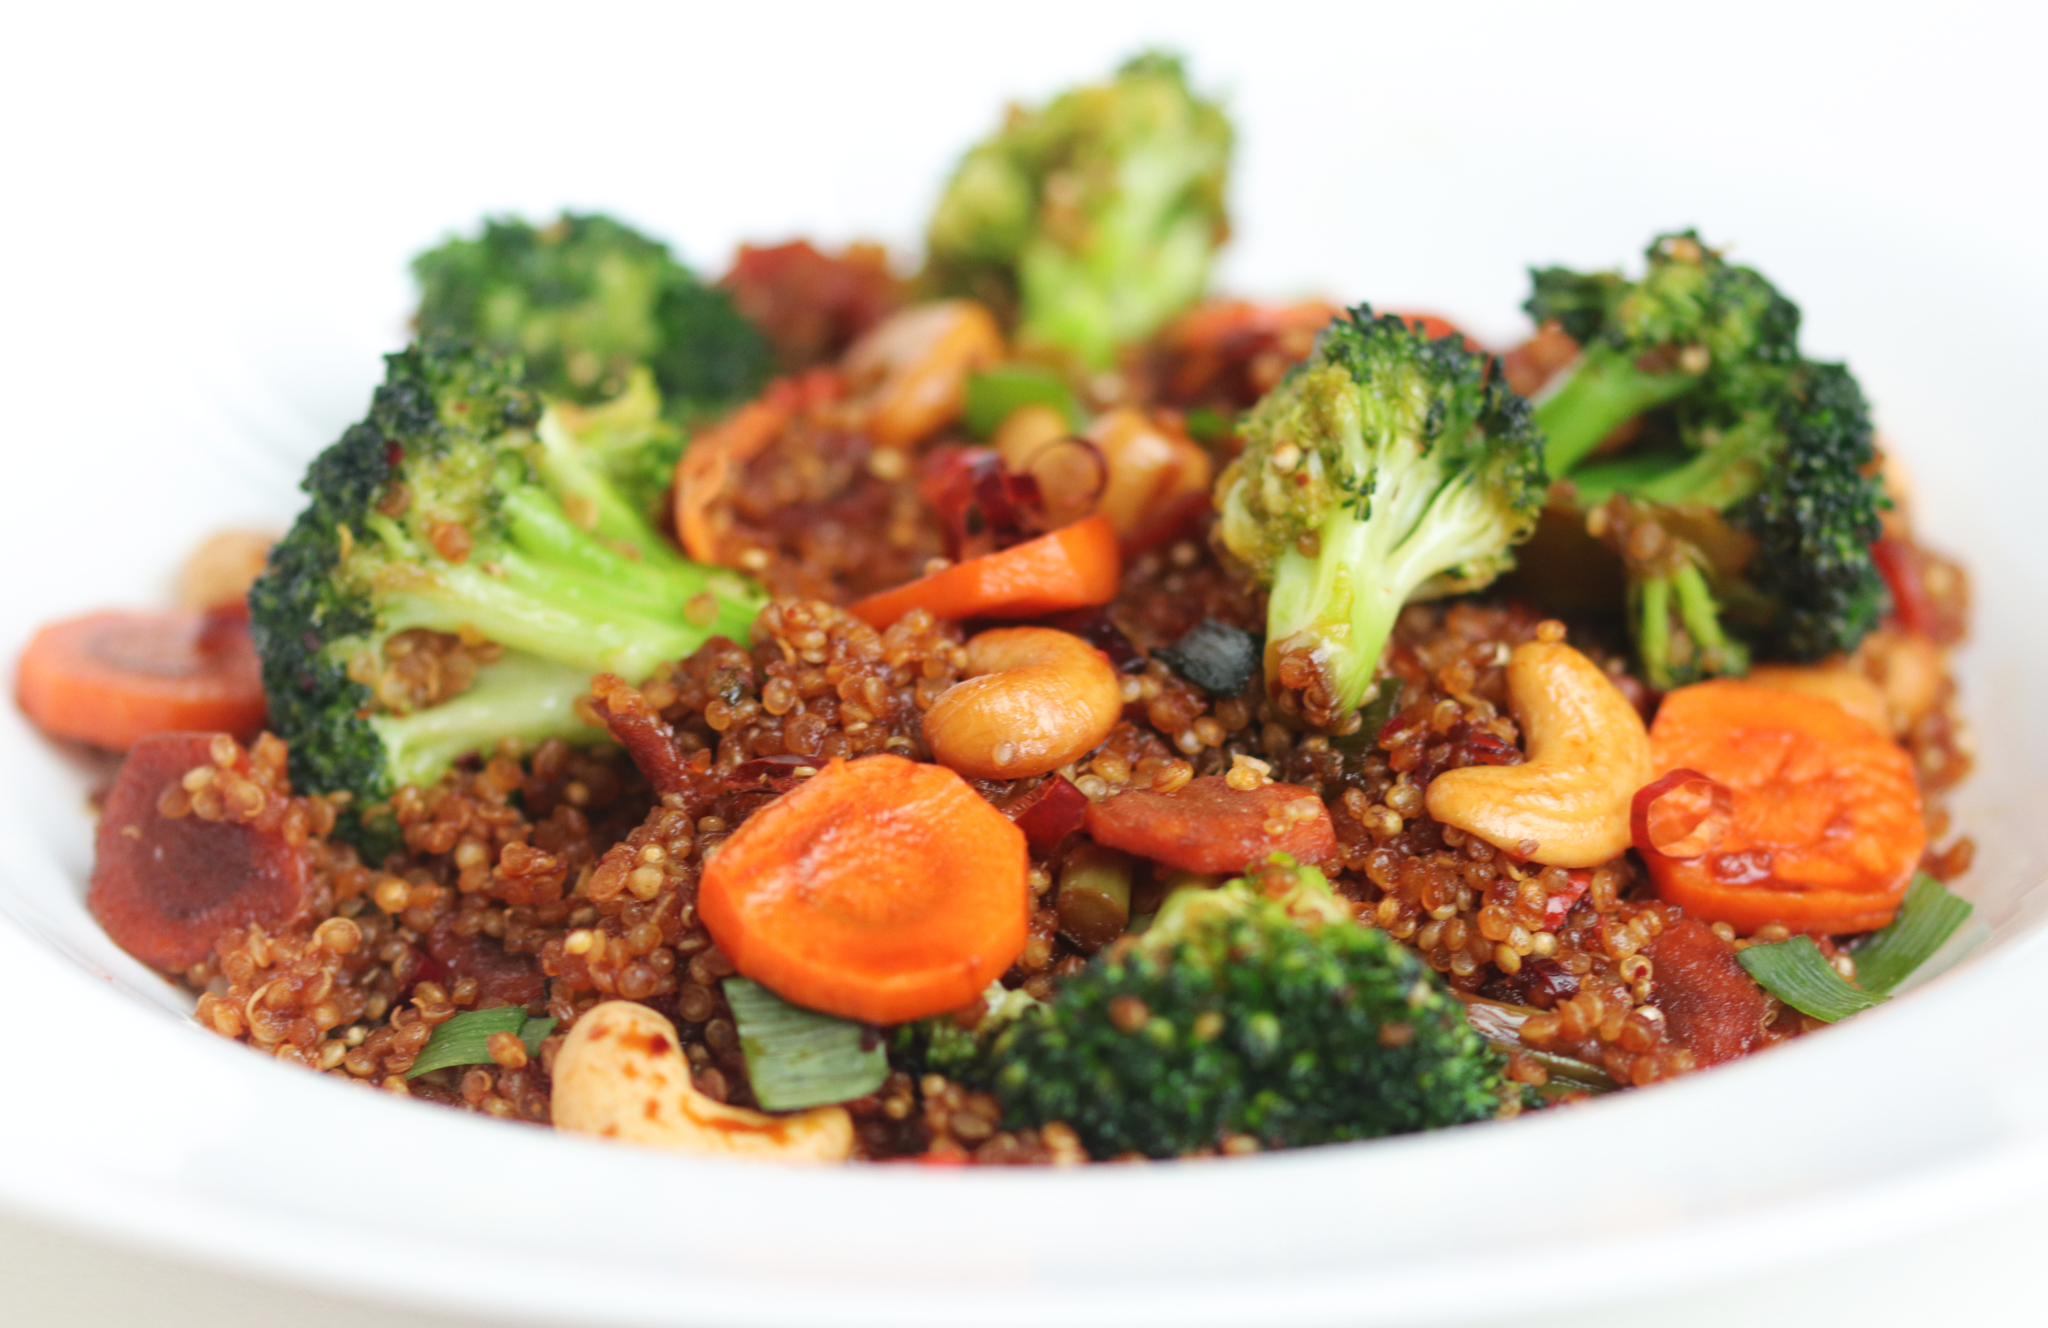 Sauteed quinoa with vegetables-1